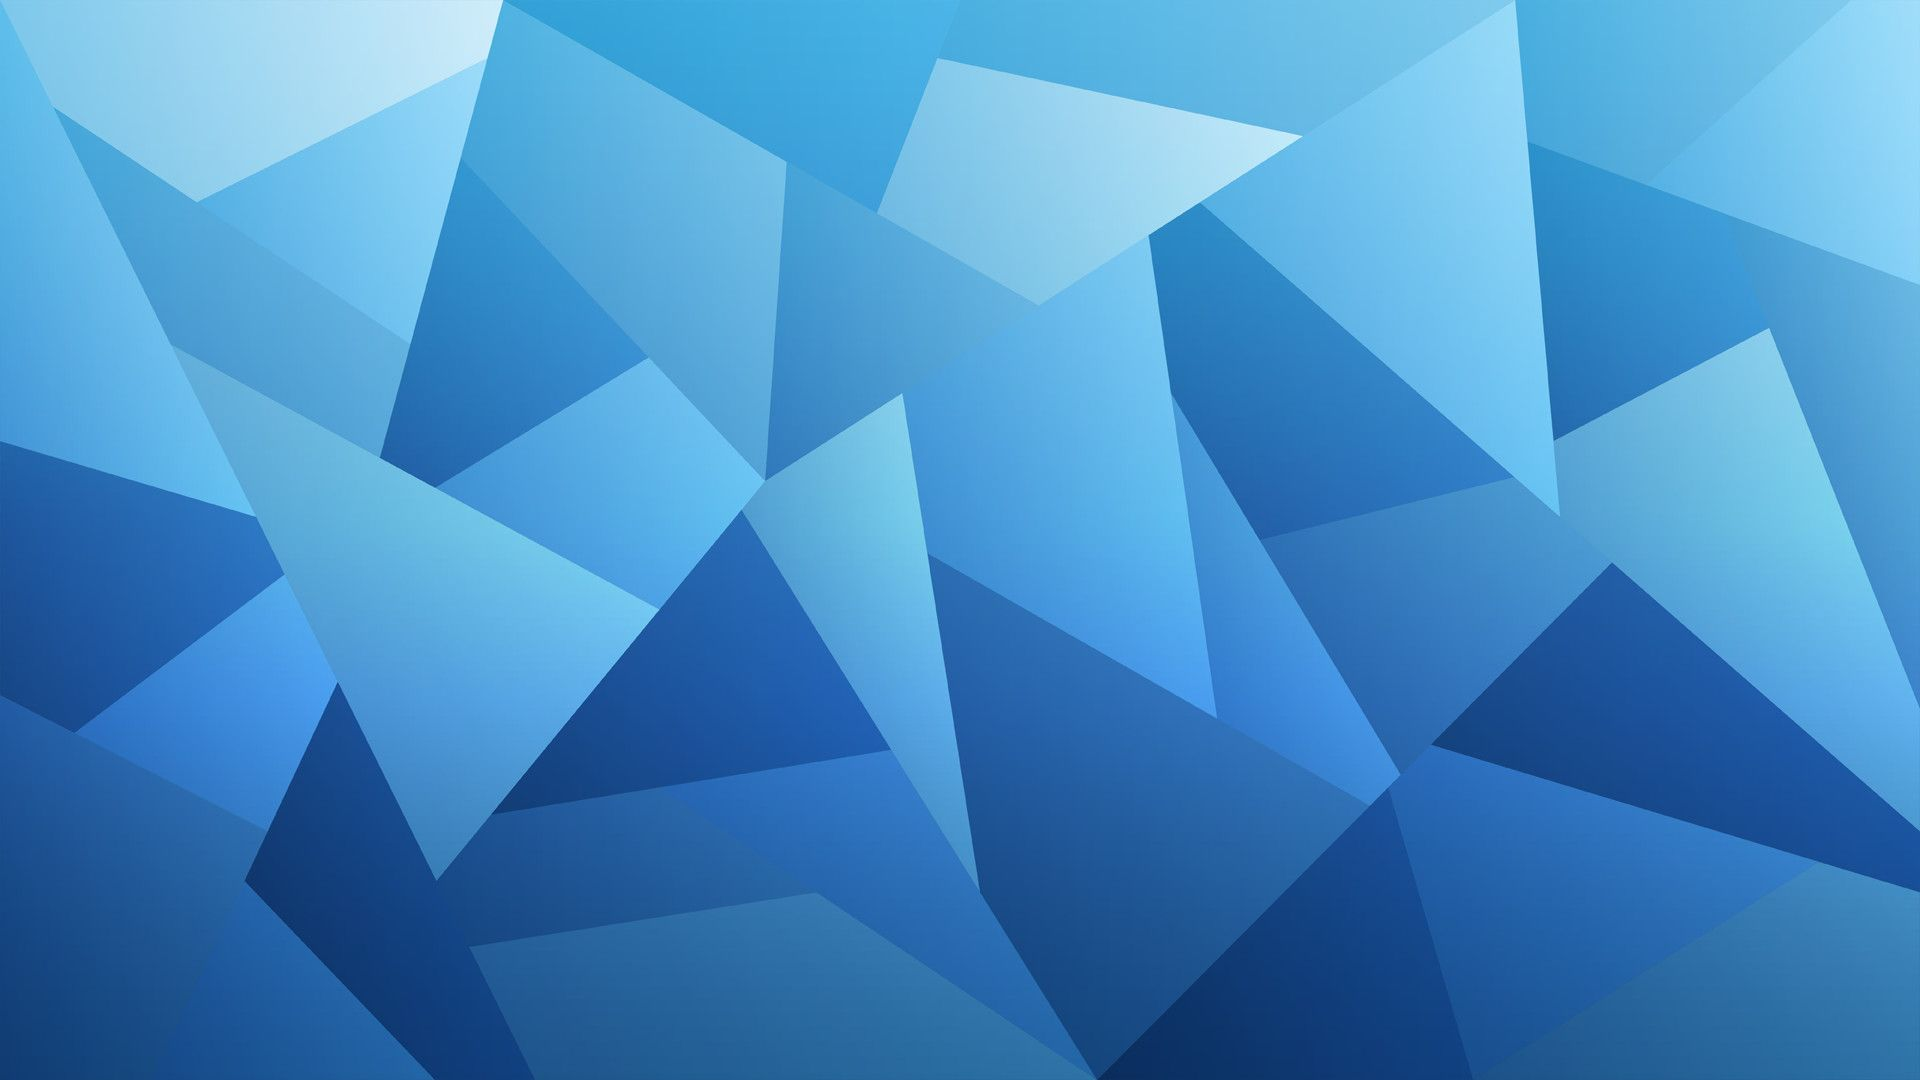 Blue Geometric Wallpapers Top Free Blue Geometric